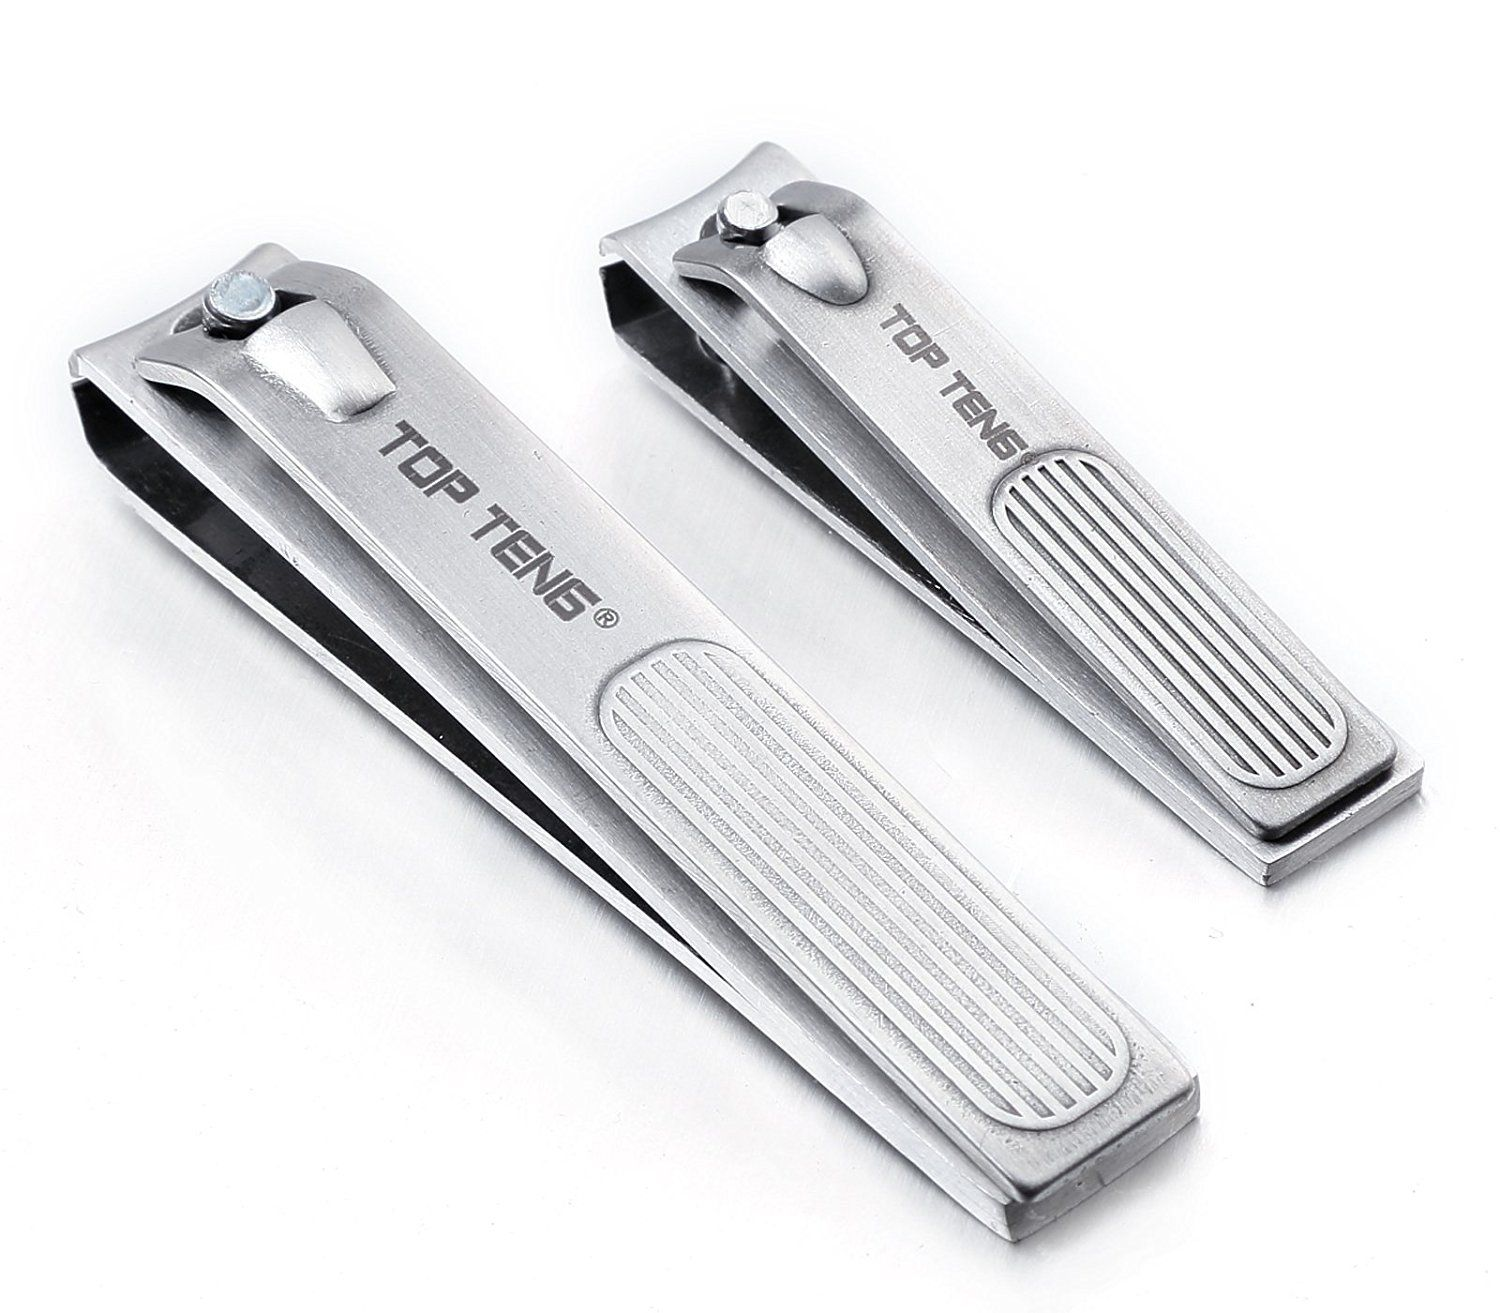 TOP TENG' Deluxe Brushed Stainless Steel Sharpest Nail Clippers